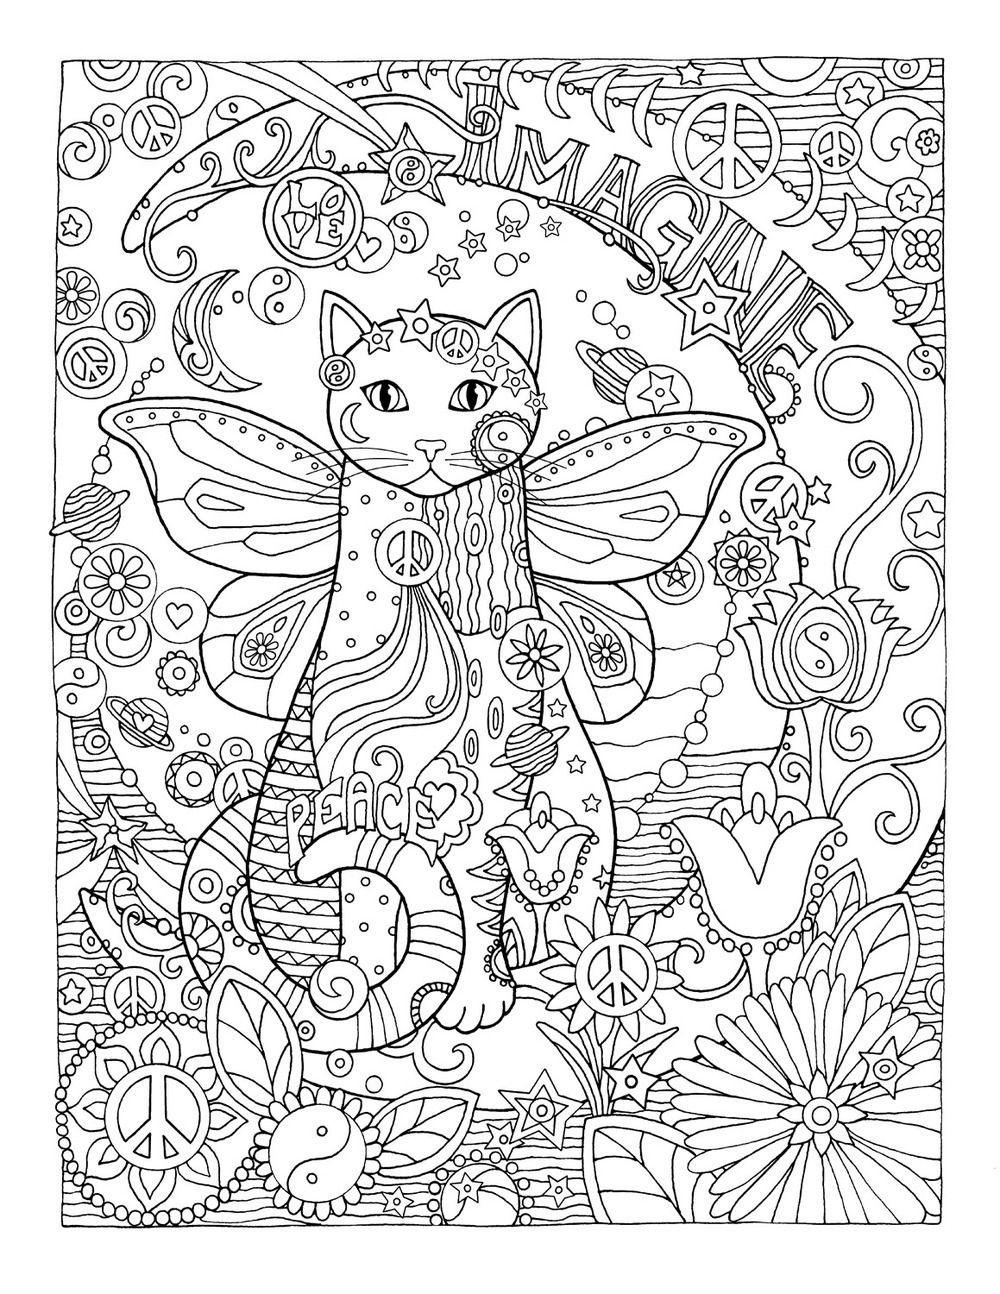 Creative cats colouring book imagine by marjorie sarnat coloring